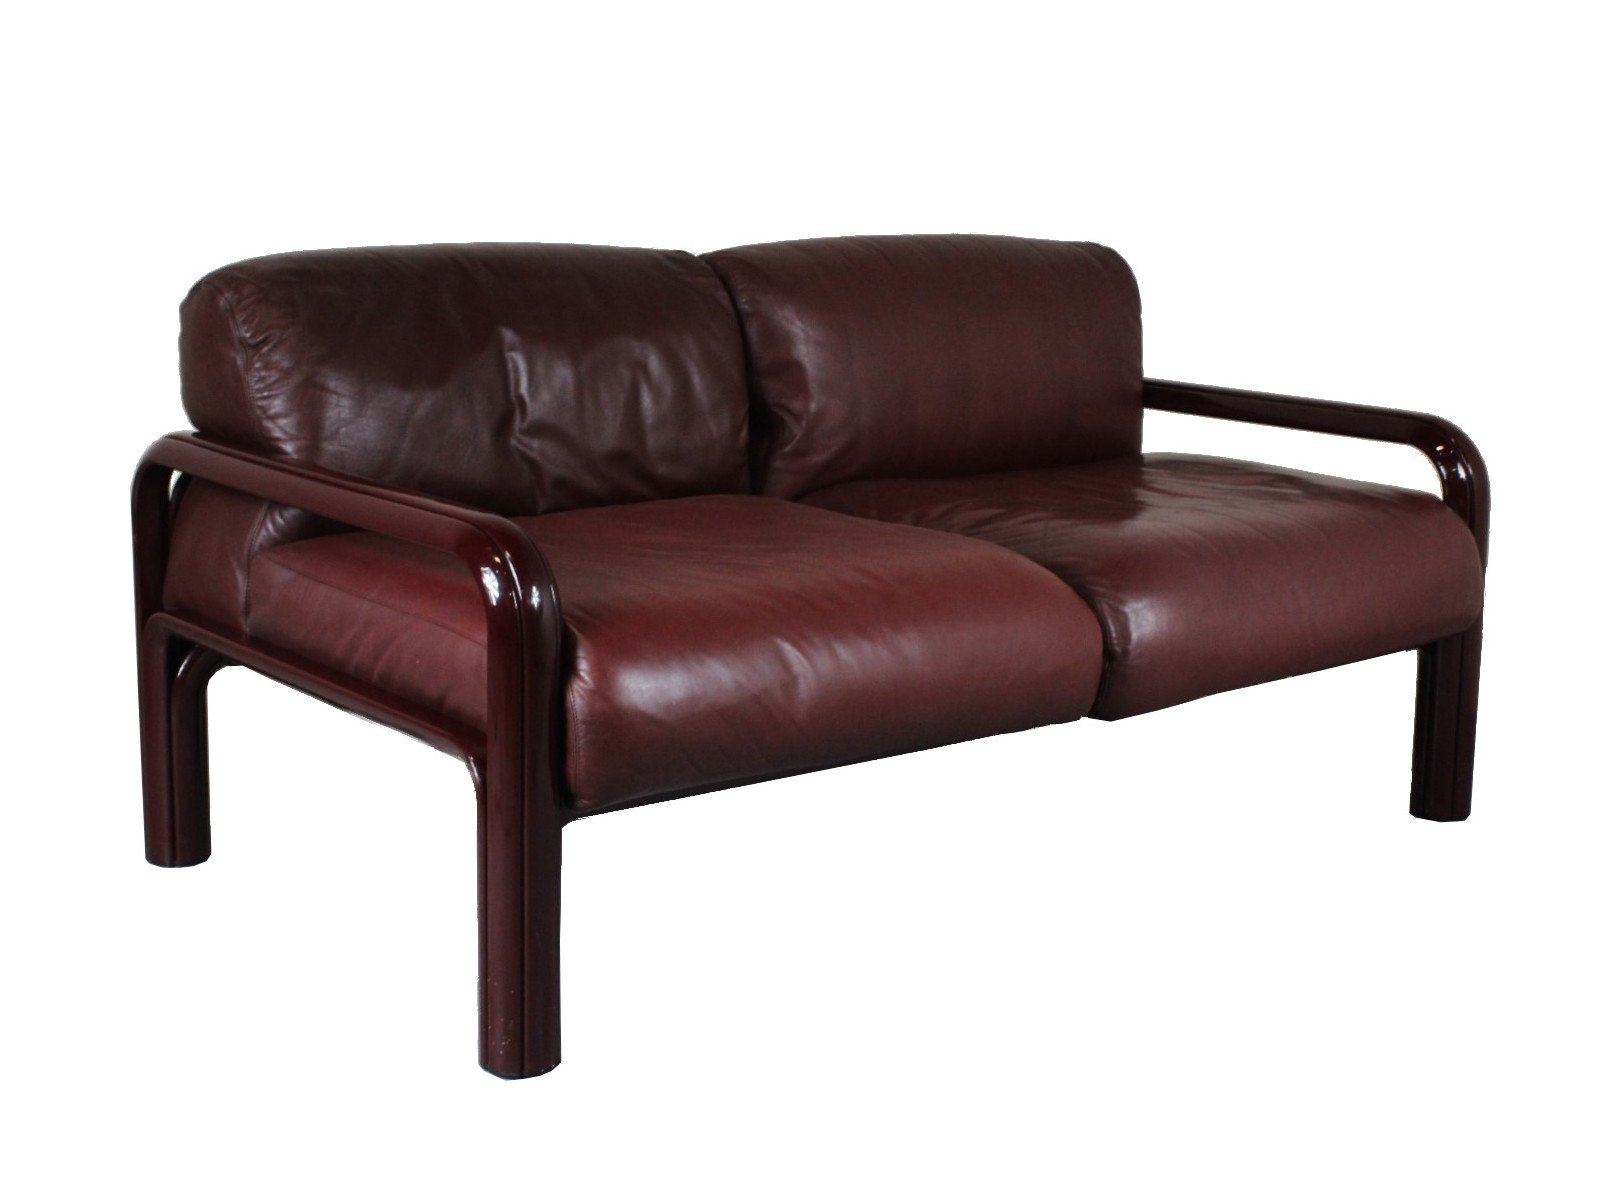 2 Seater Leather Sofa By Gae Aulenti For Knoll, 1970S